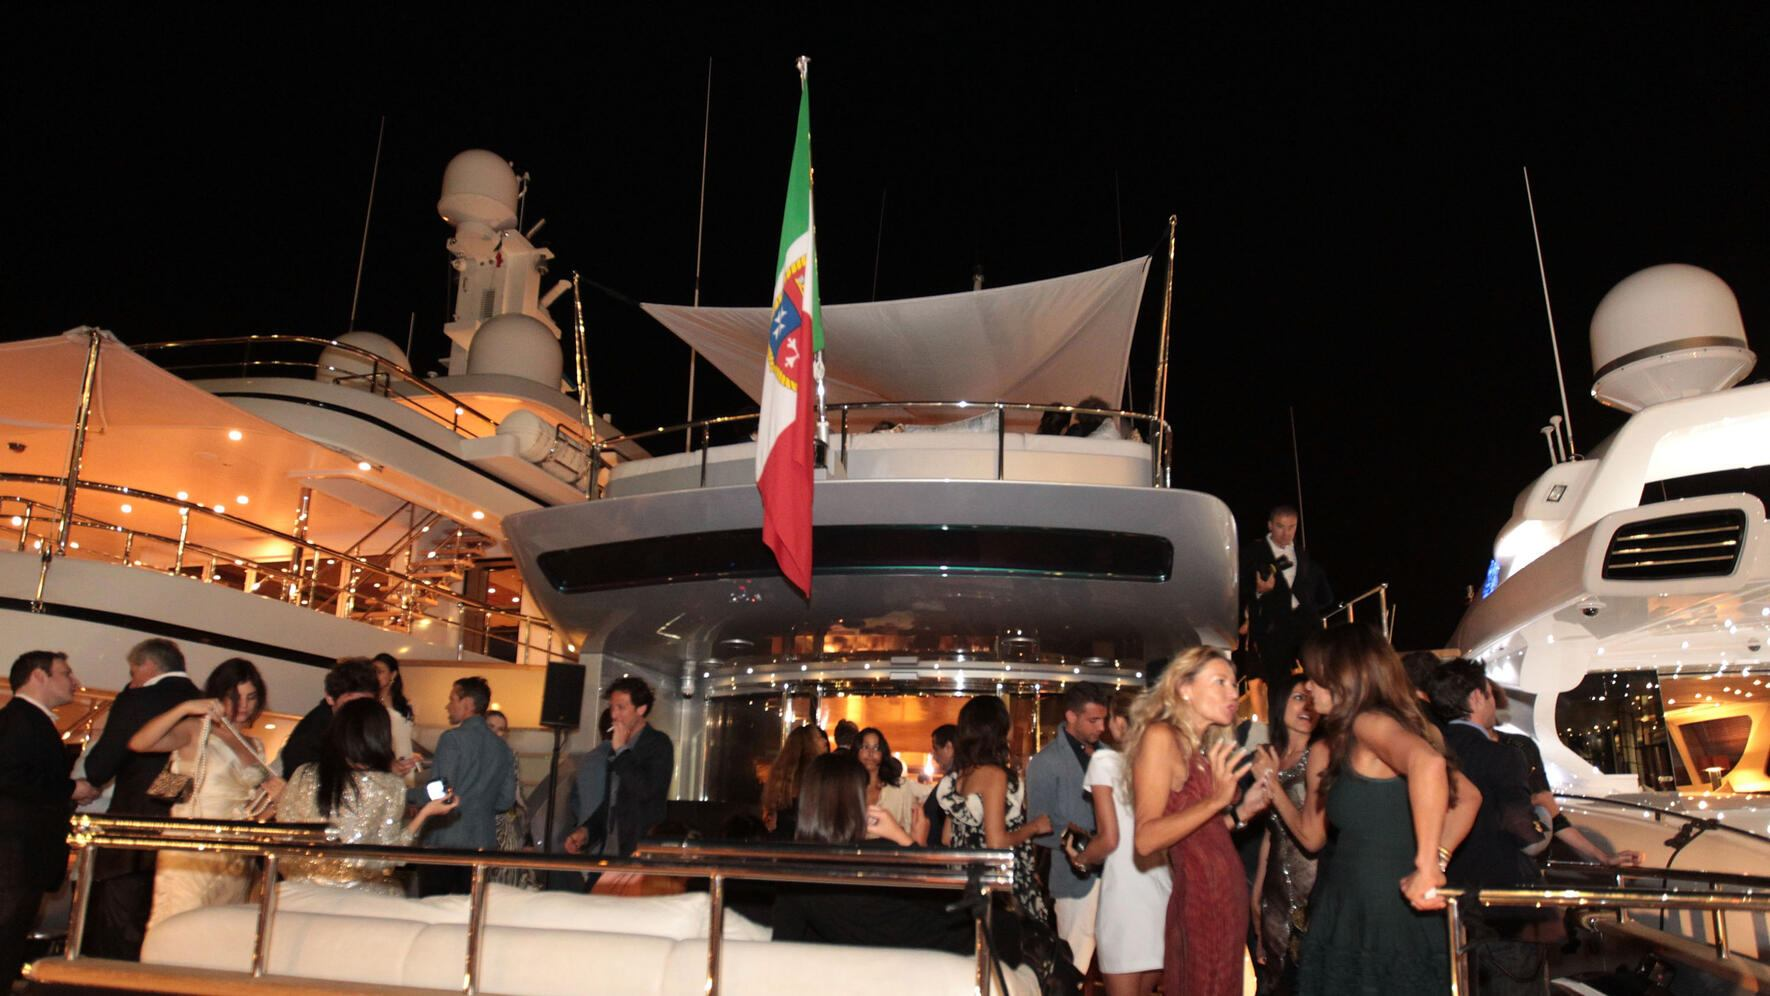 Cannes Film Festival 2011: Party Schiff